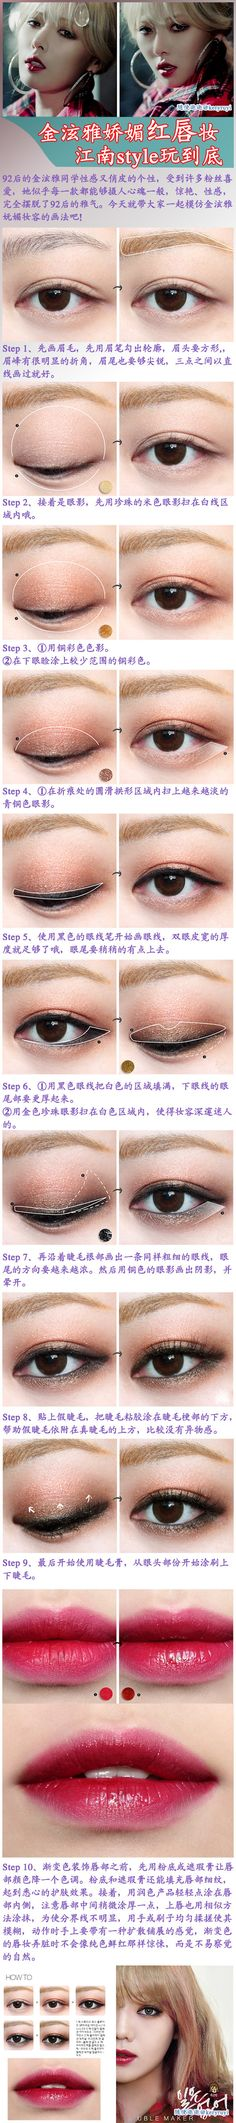 asian make up tutorial